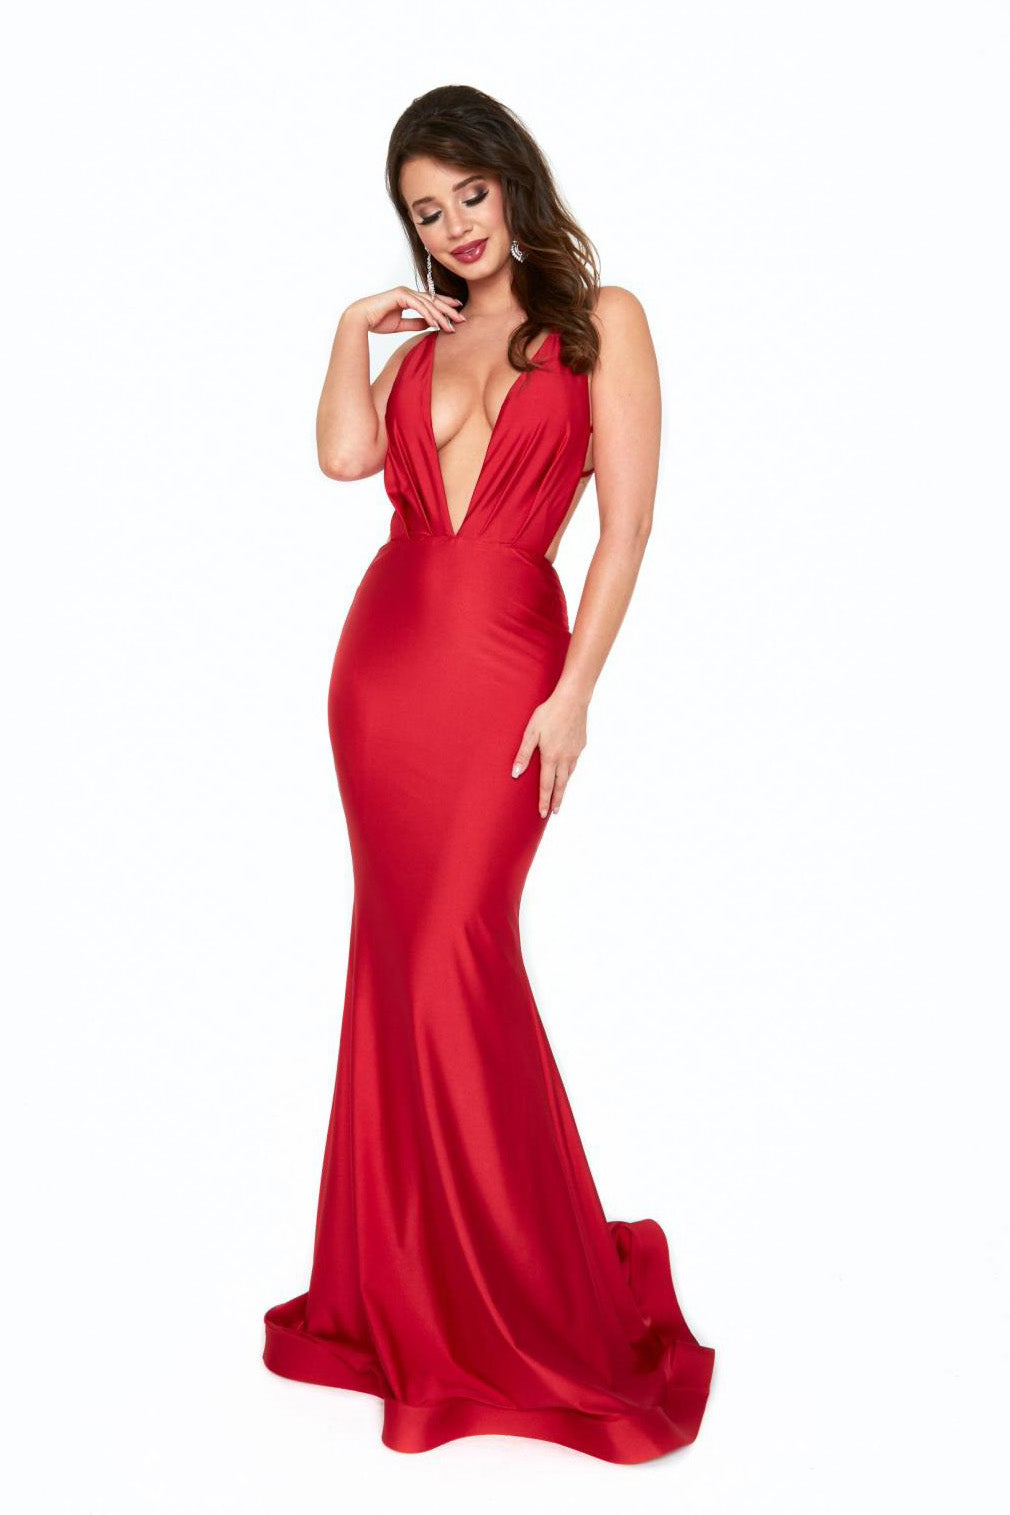 atria 6534h red low back prom dress